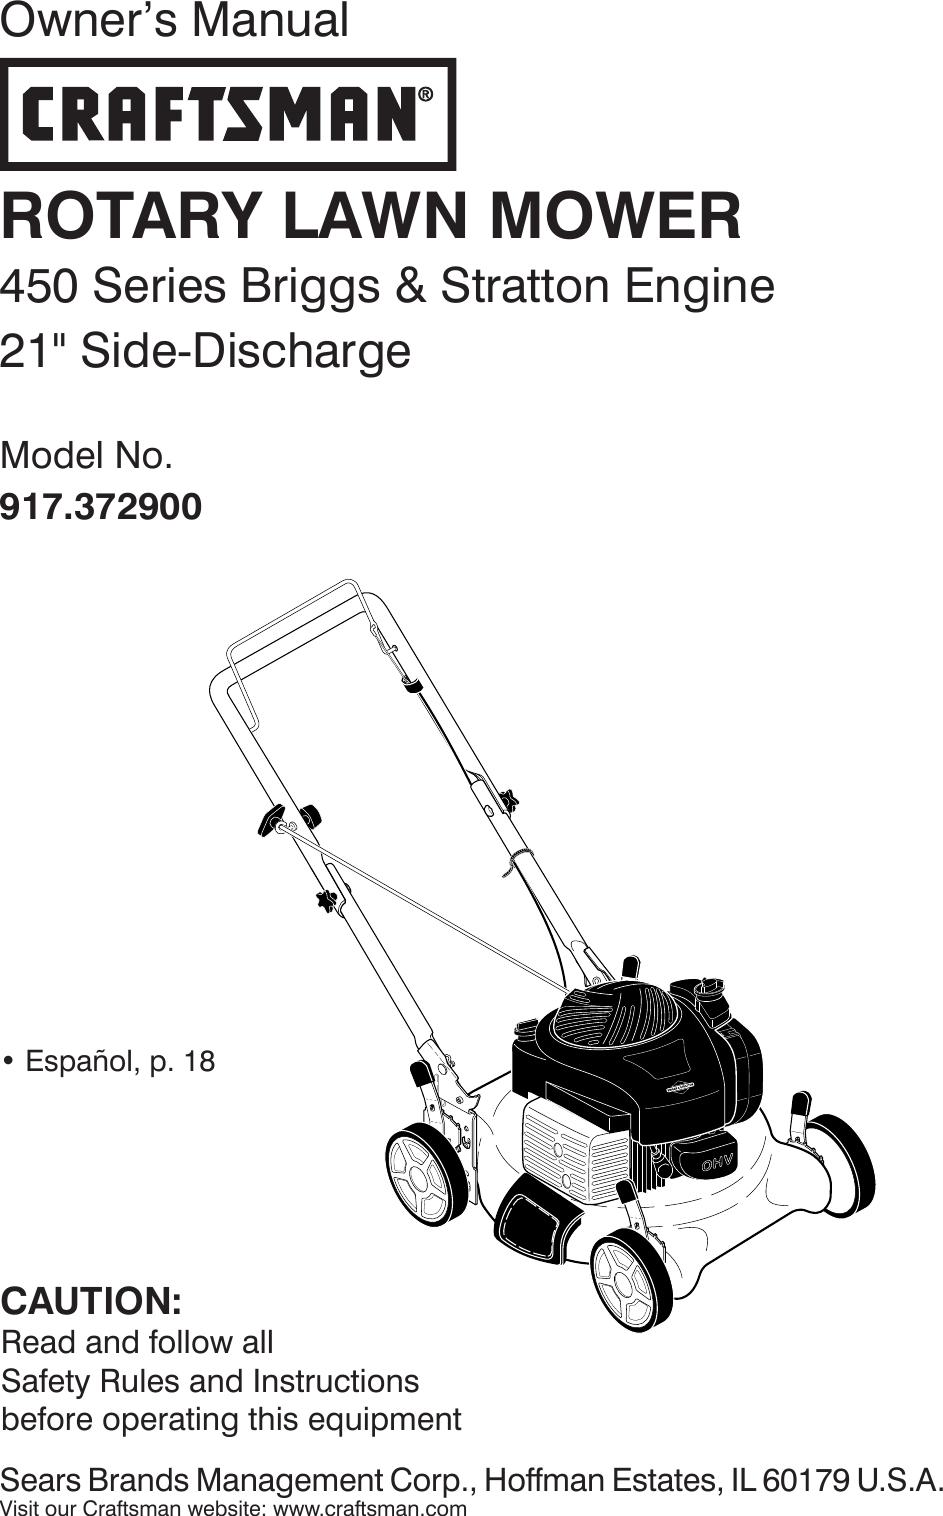 Craftsman 917372900 372900 es 589801201_r0 User Manual